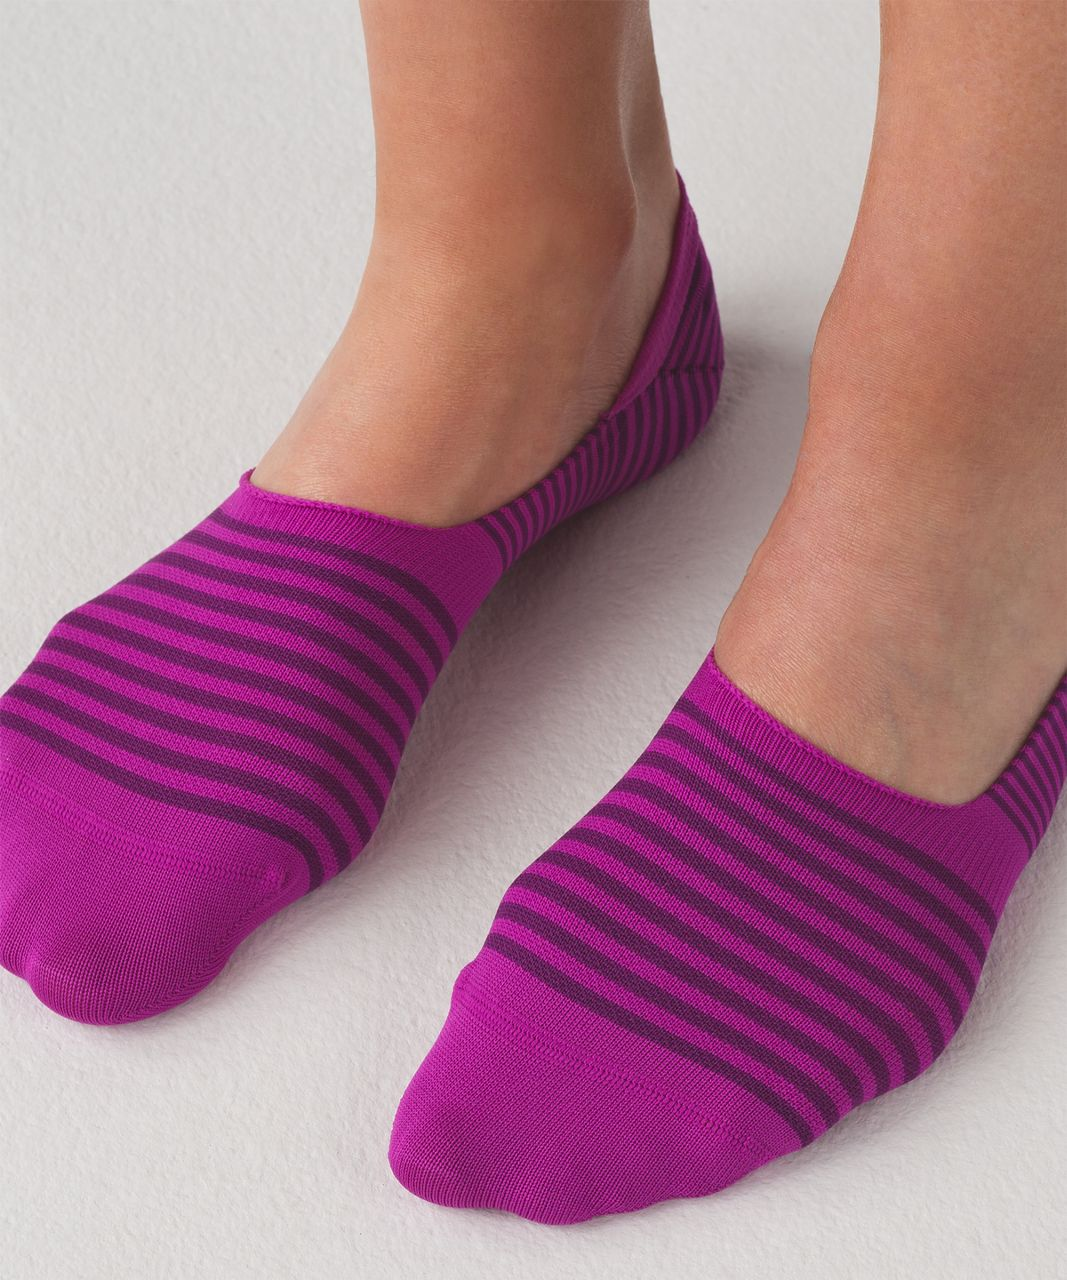 Lululemon Secret Sock - Polar Pink / Aurora / Pow Pink